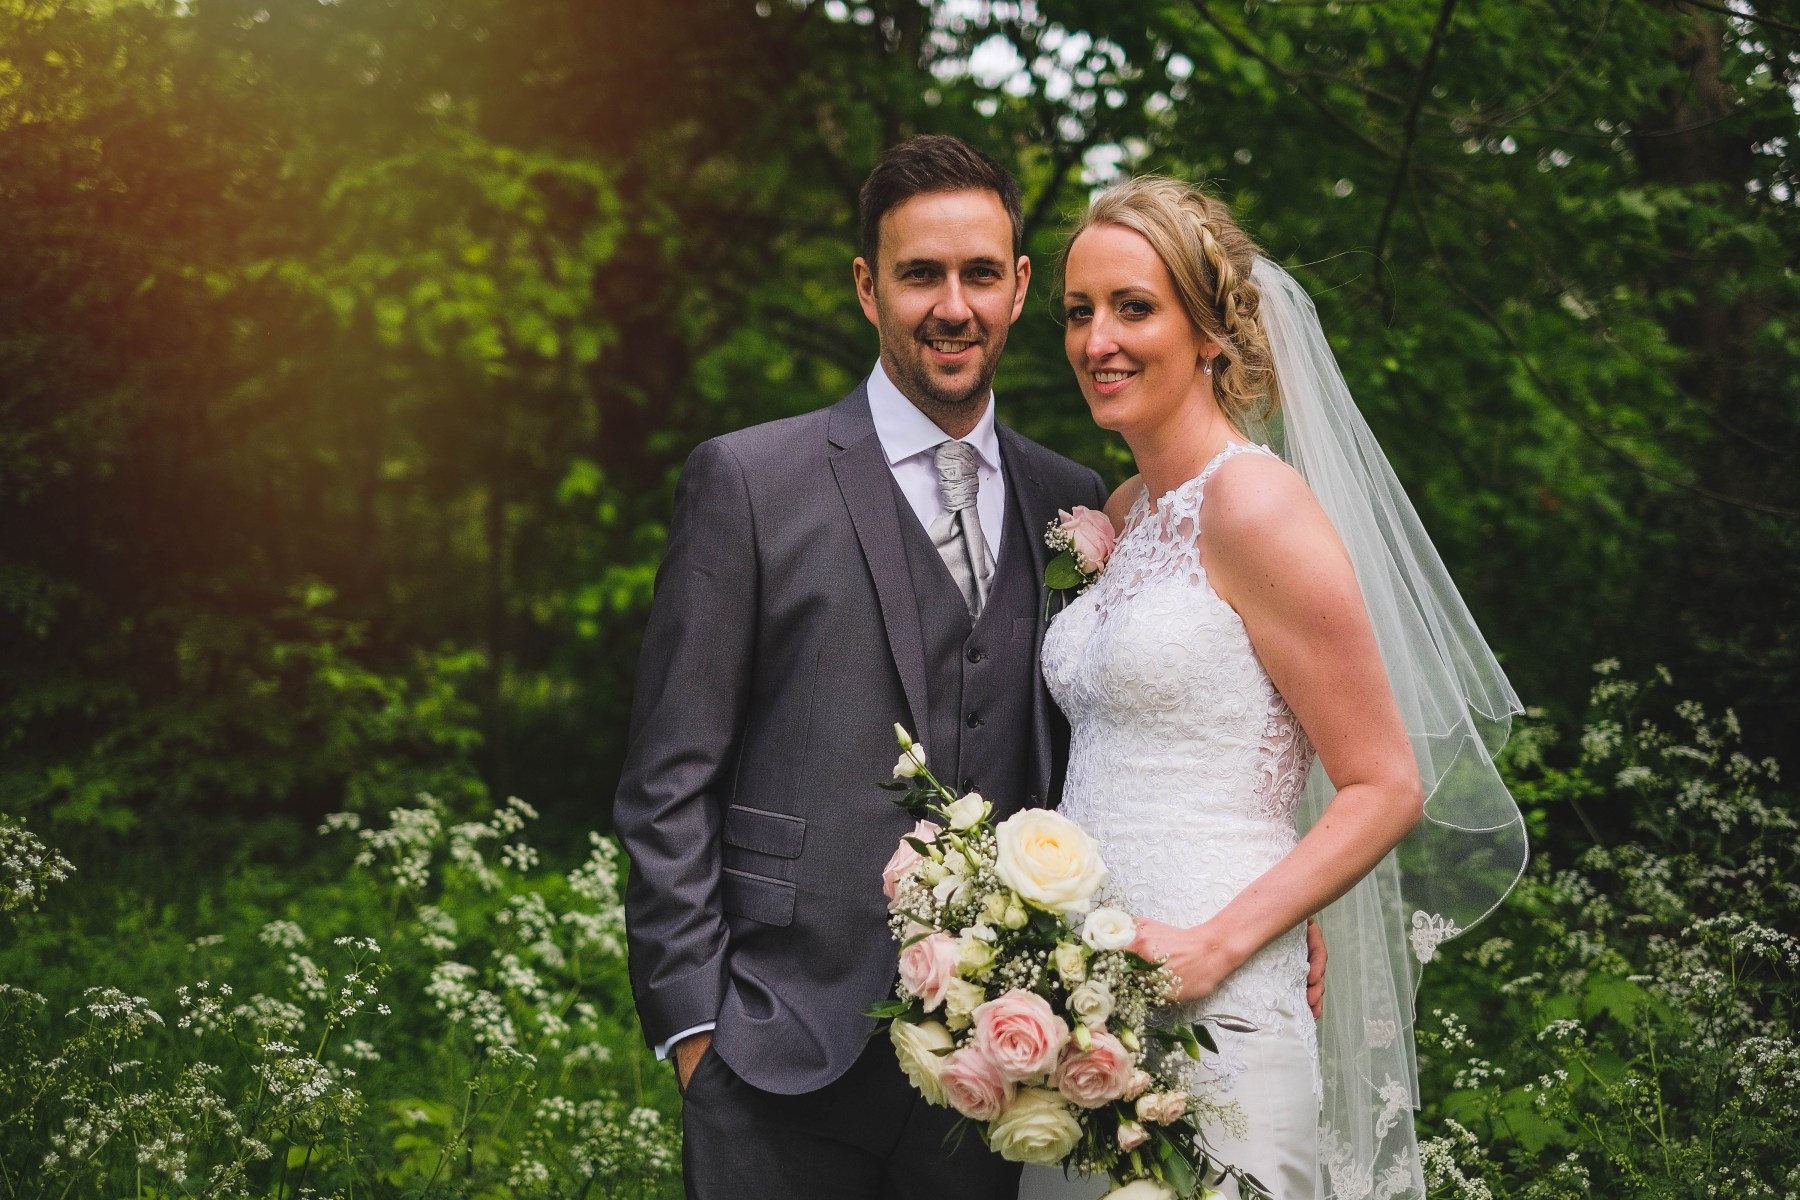 Natural wedding photography in Liverpool